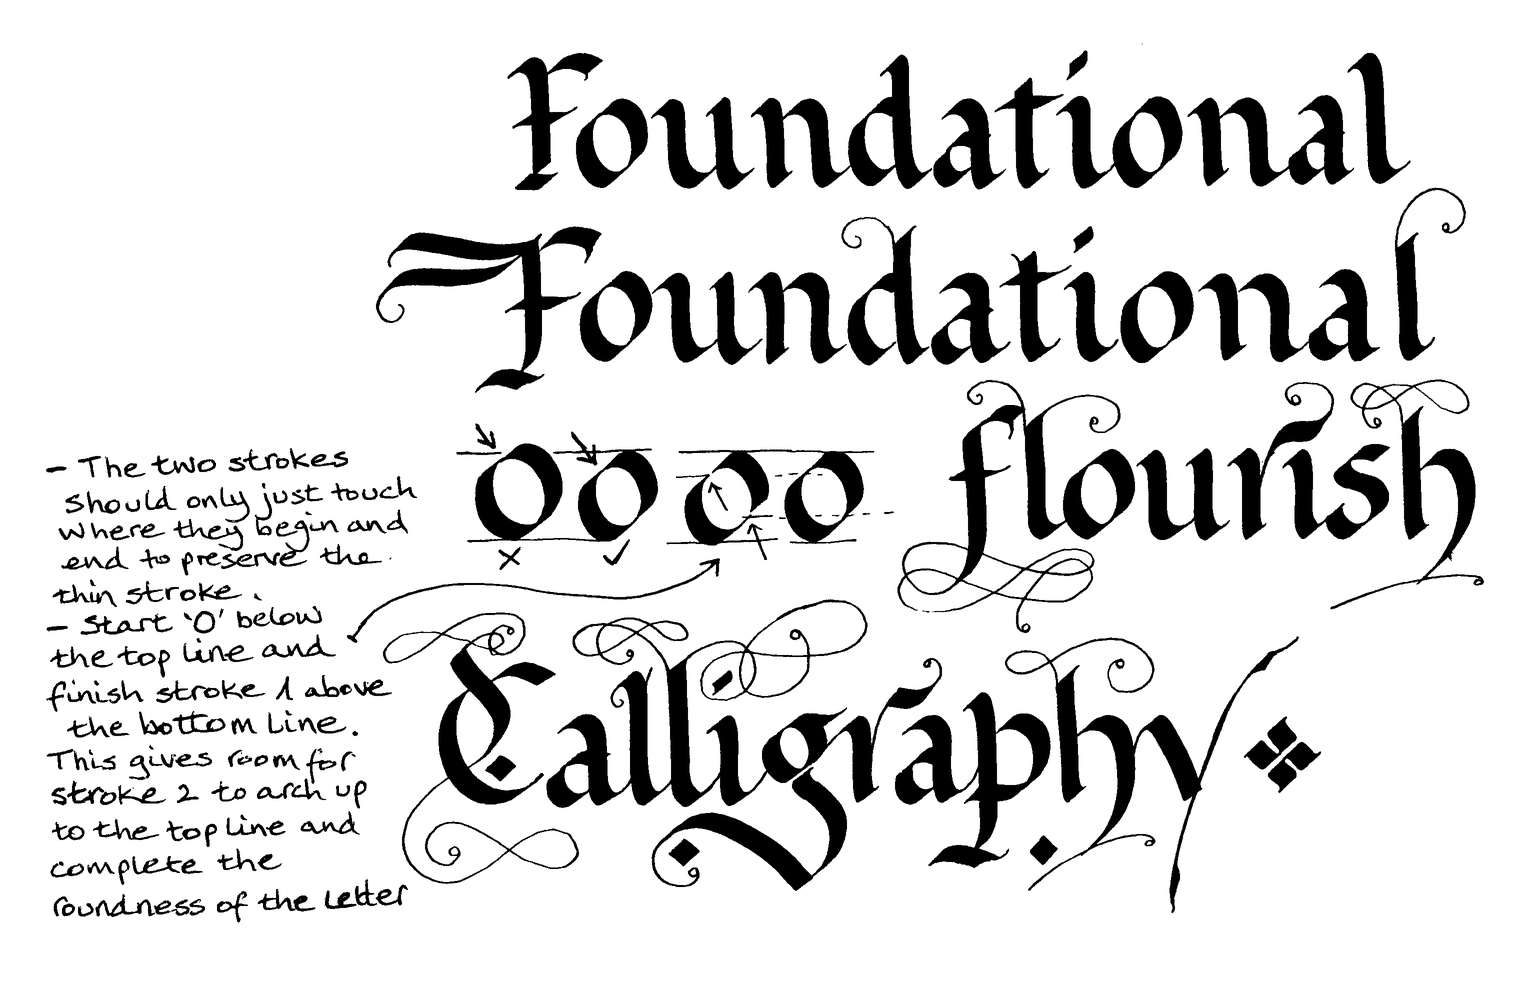 Foundational Hand With Flourishes